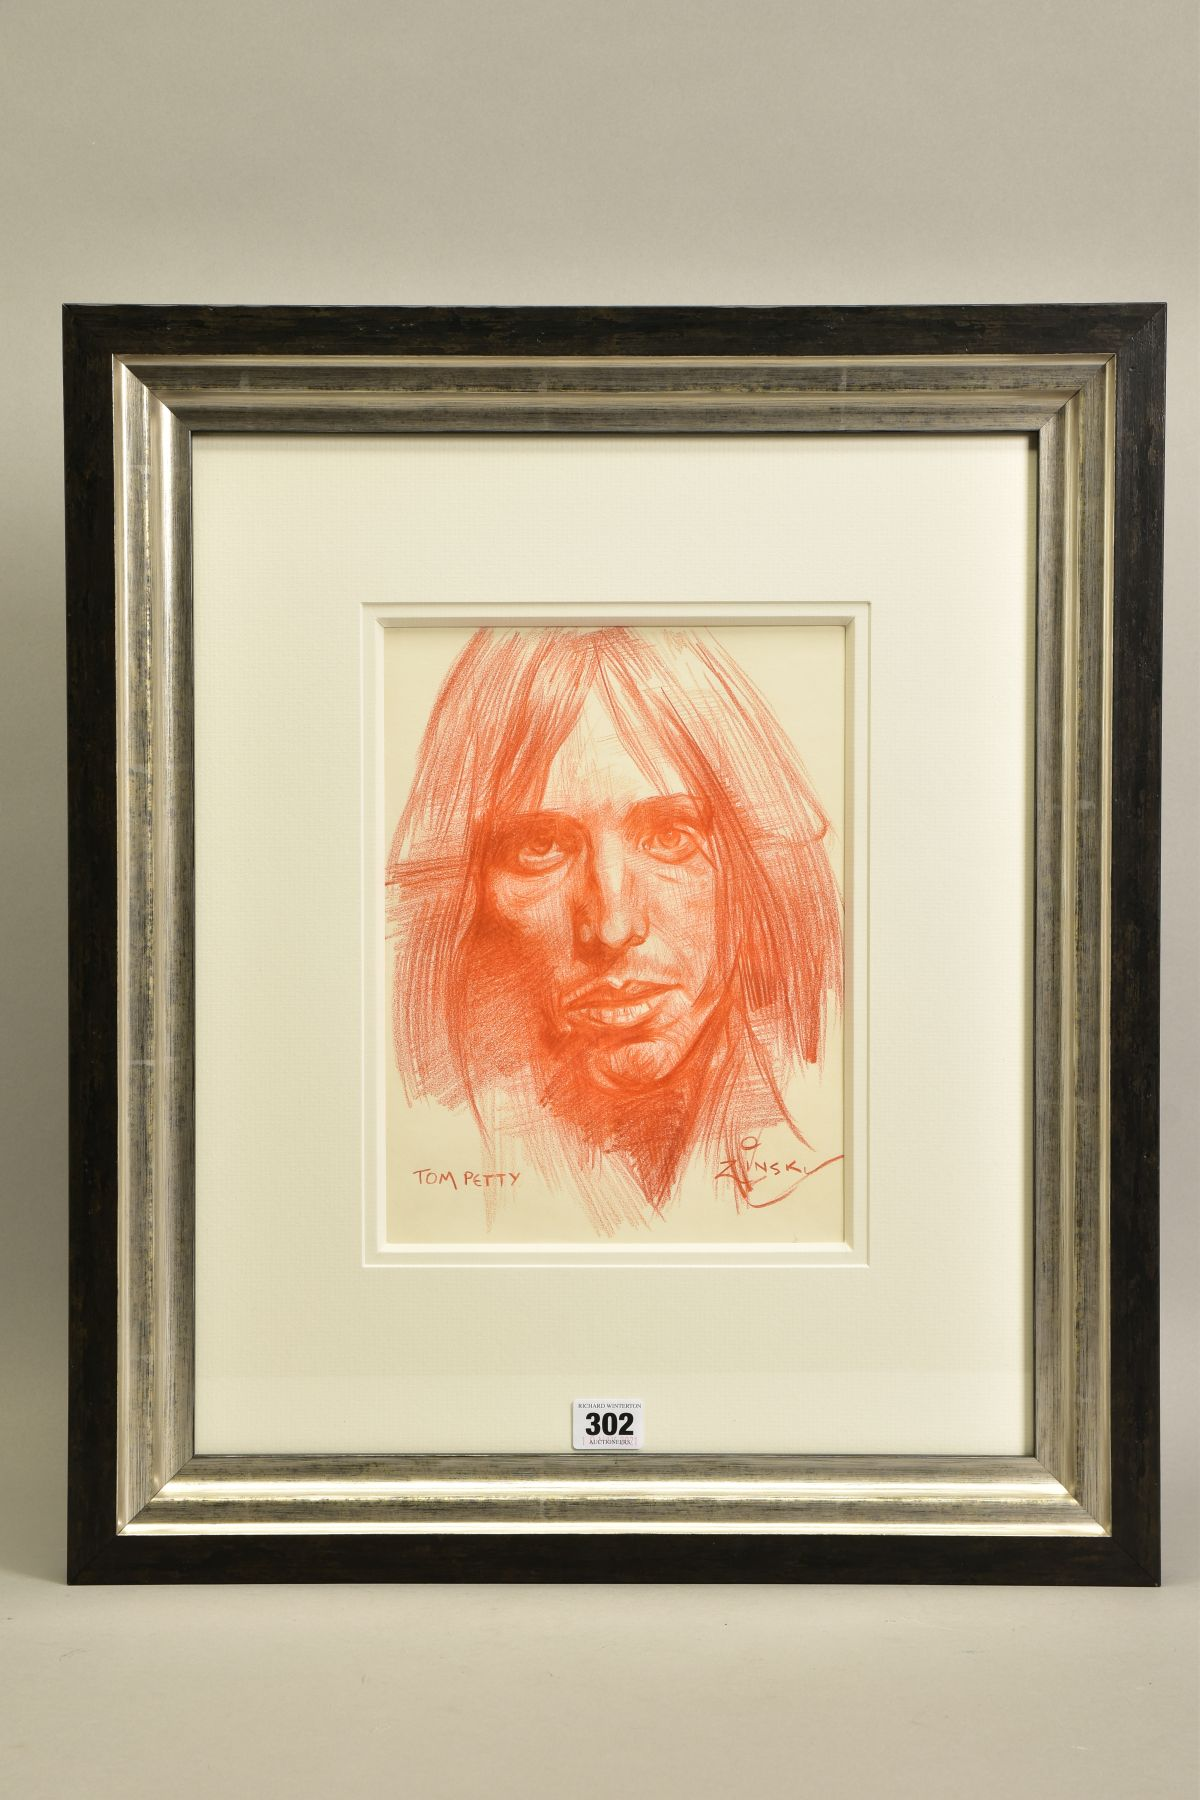 ZINSKY (BRITISH CONTEMPORARY) 'TOM PETTY' a portrait of the American rock star, signed and titled to